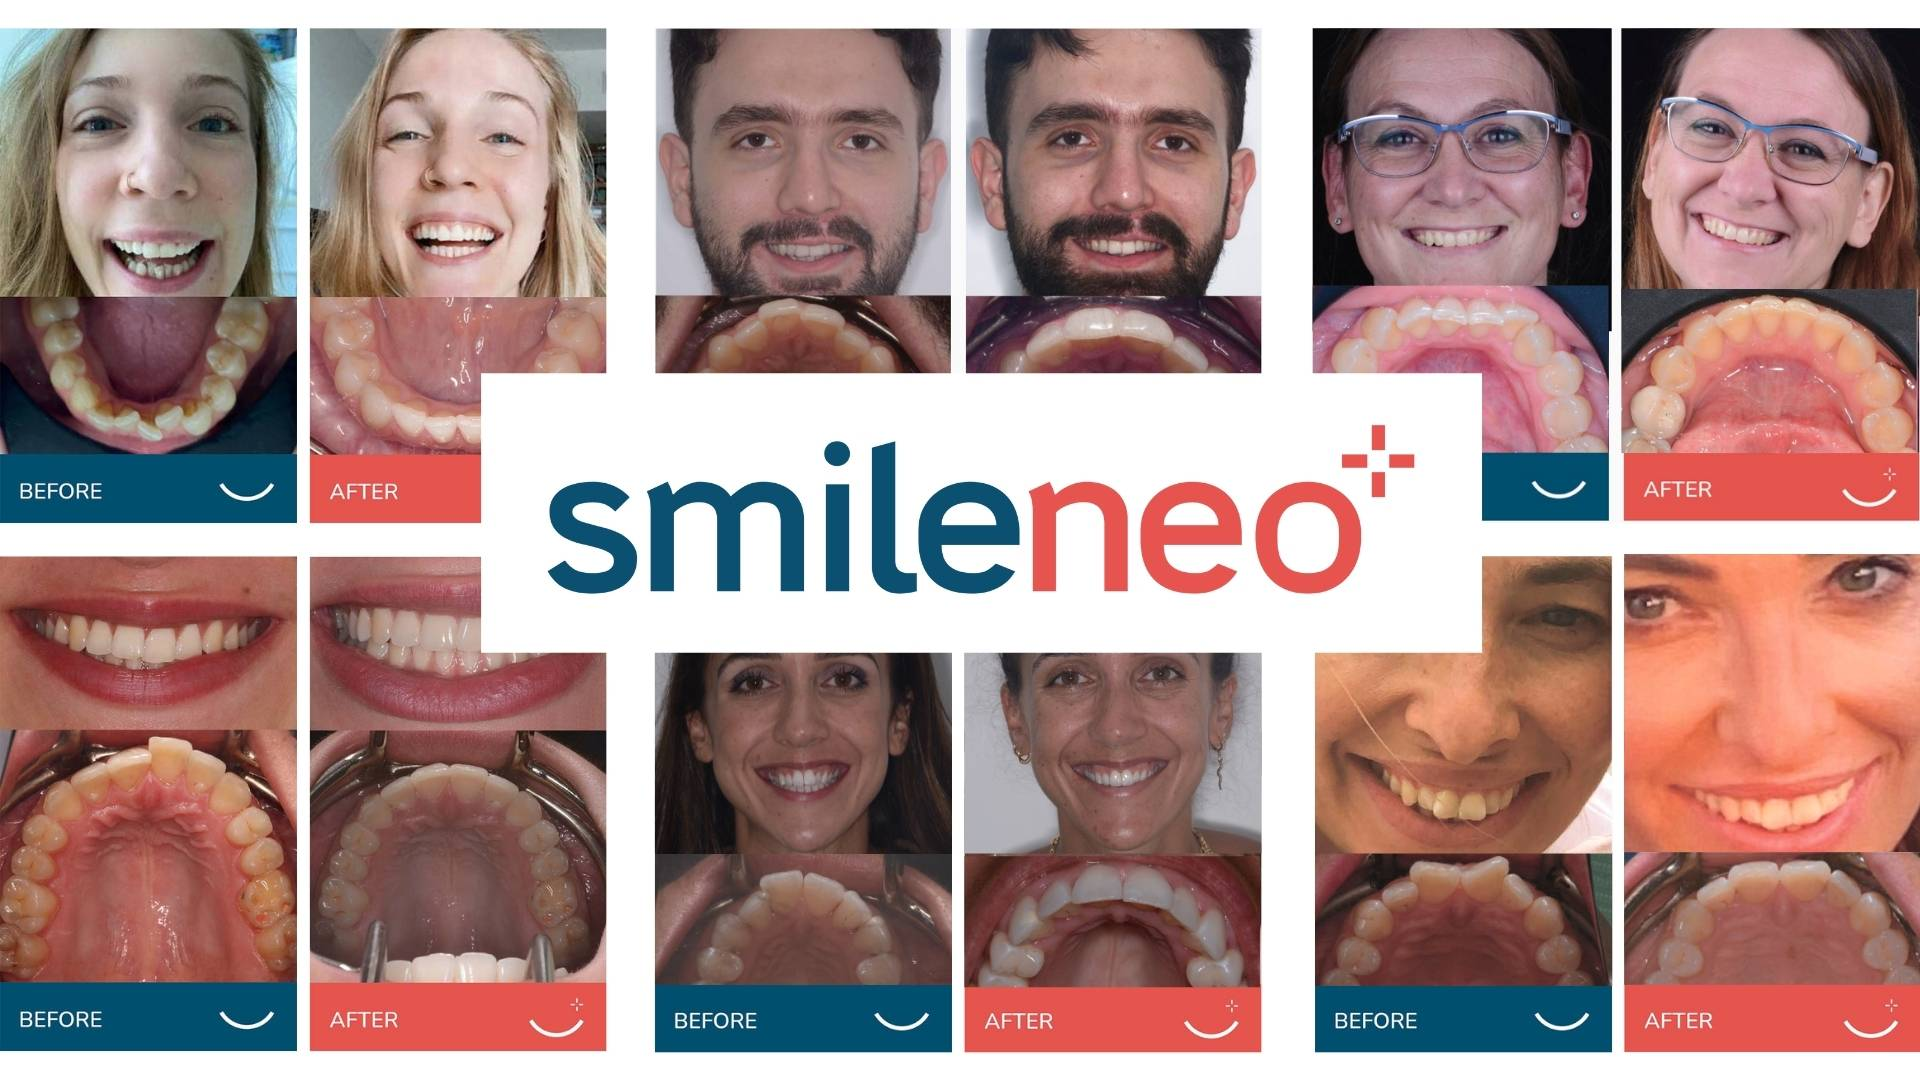 Before and after smileneo patients